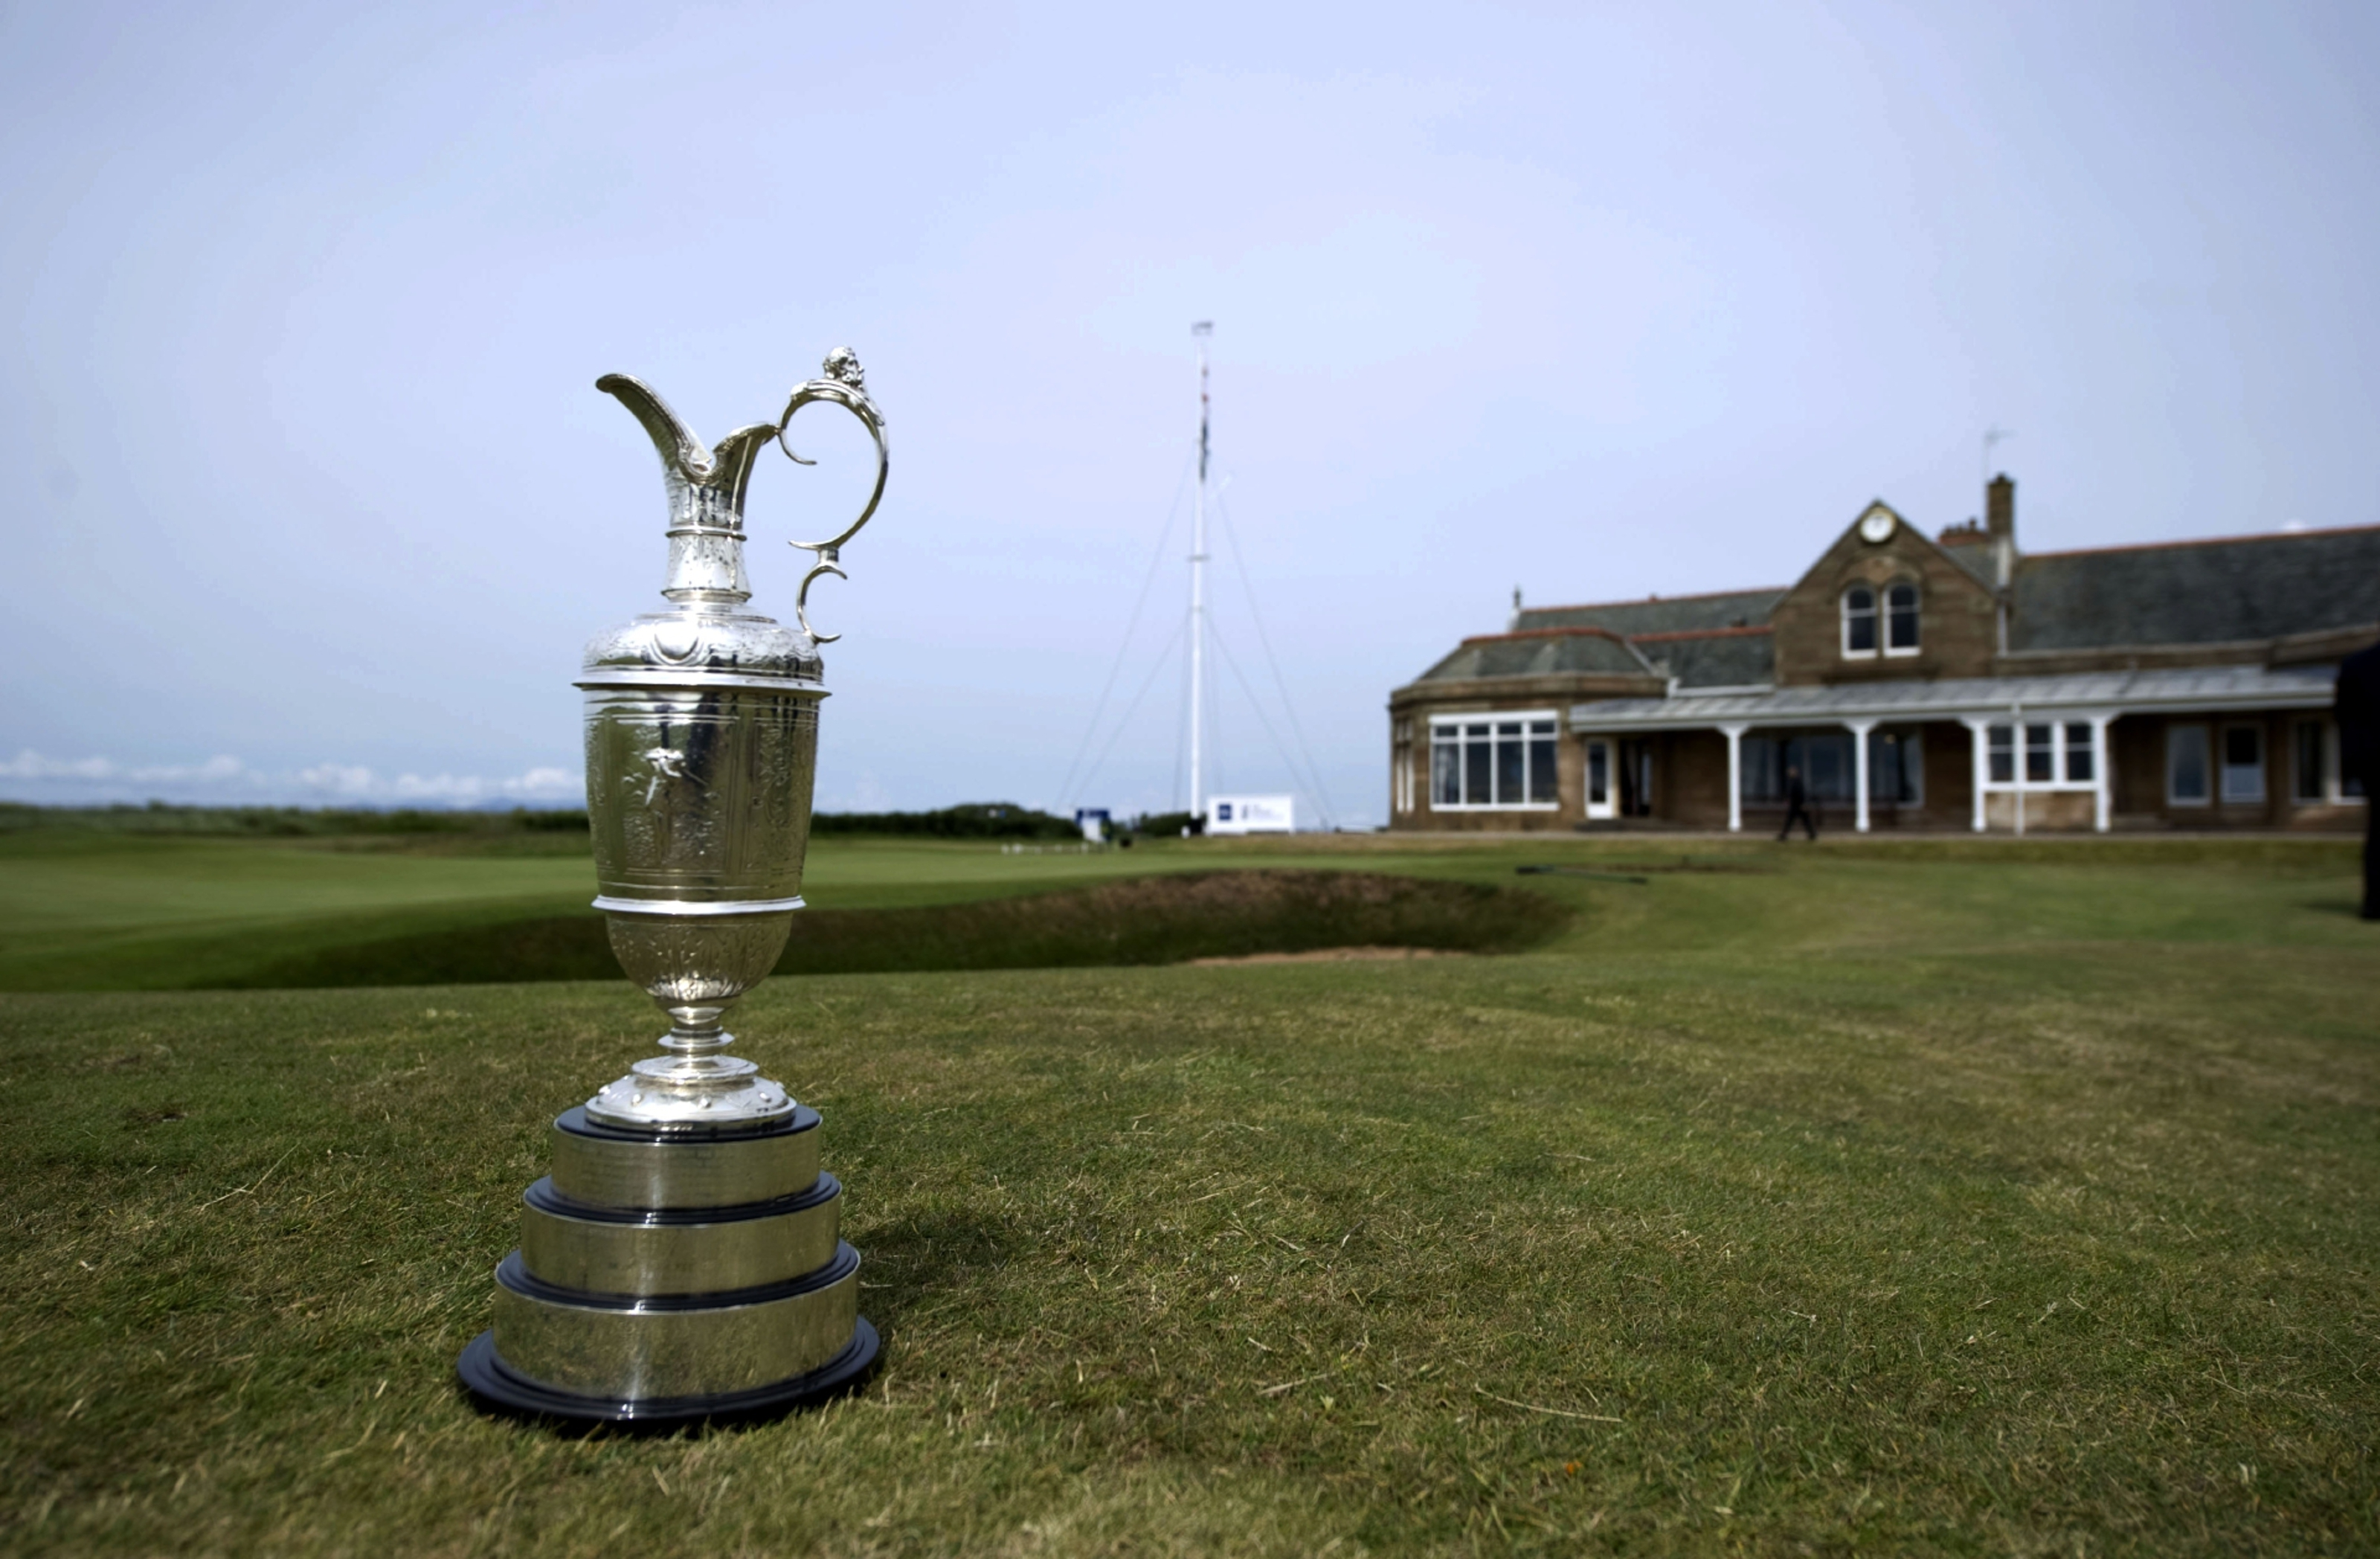 Royal Troon Golf Club with the Claret Jug.